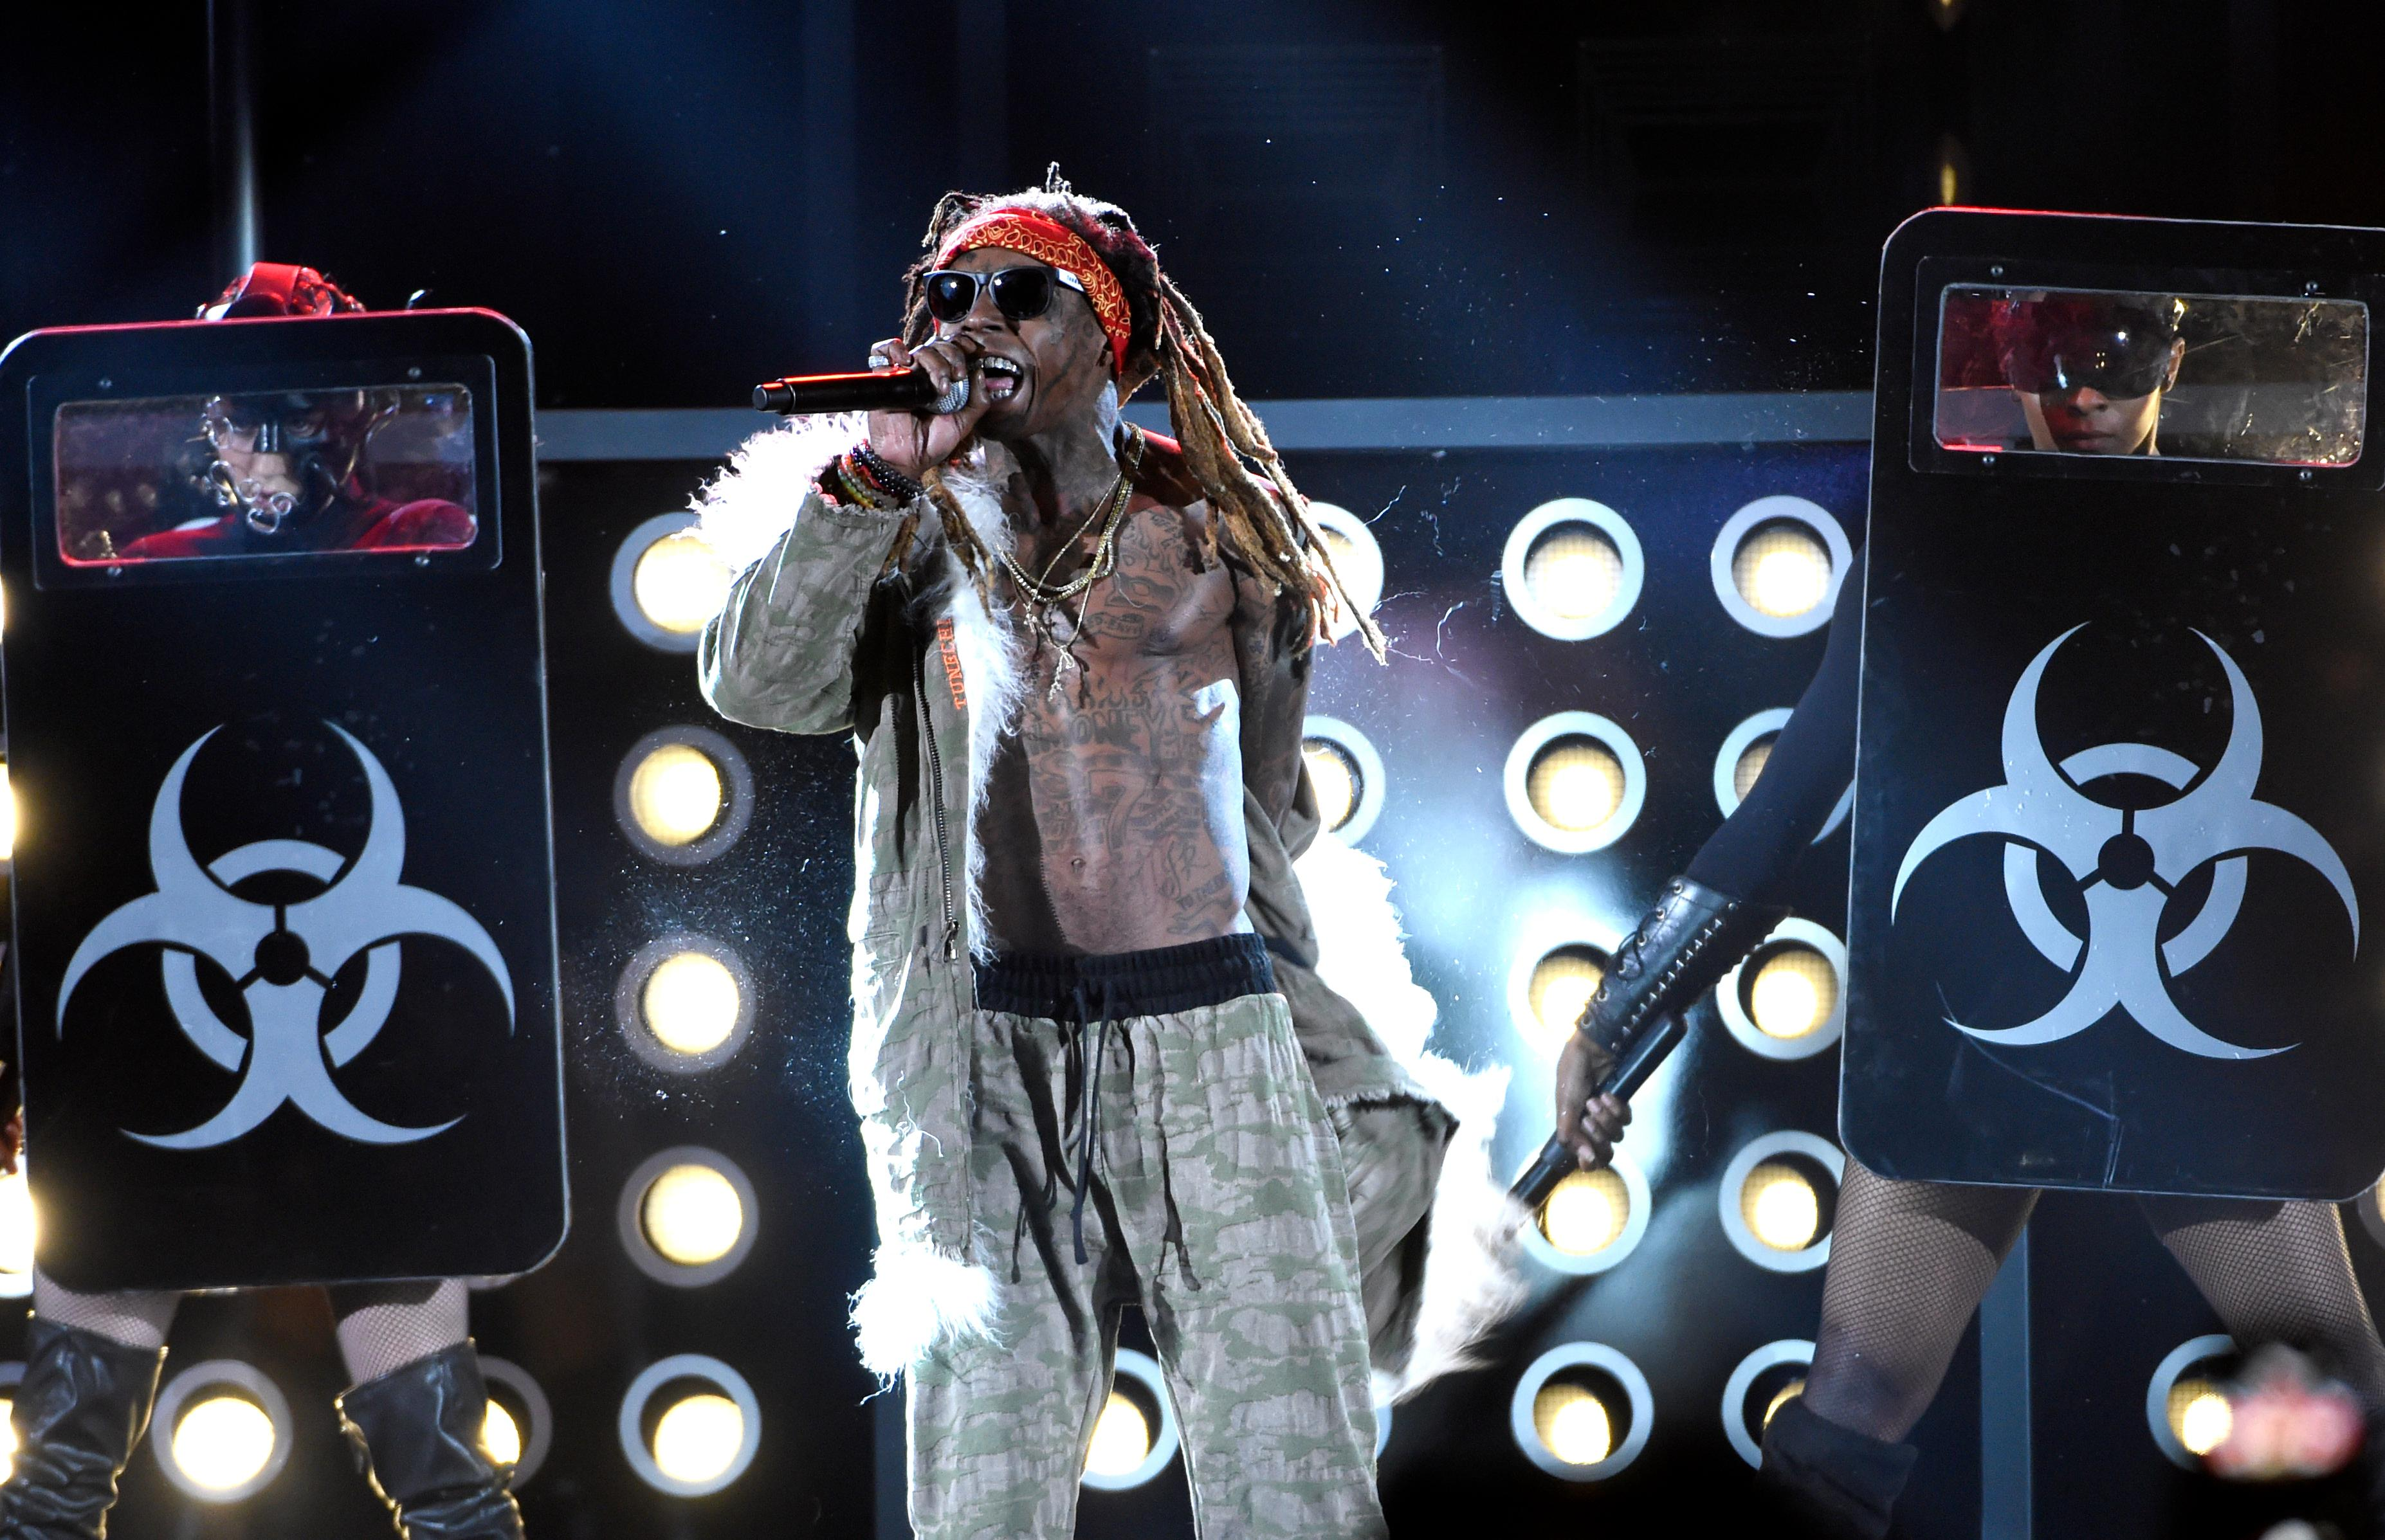 Lil Wayne performs at the Billboard Music Awards at the T-Mobile Arena on Sunday, May 21, 2017, in Las Vegas. (Photo by Chris Pizzello/Invision/AP)